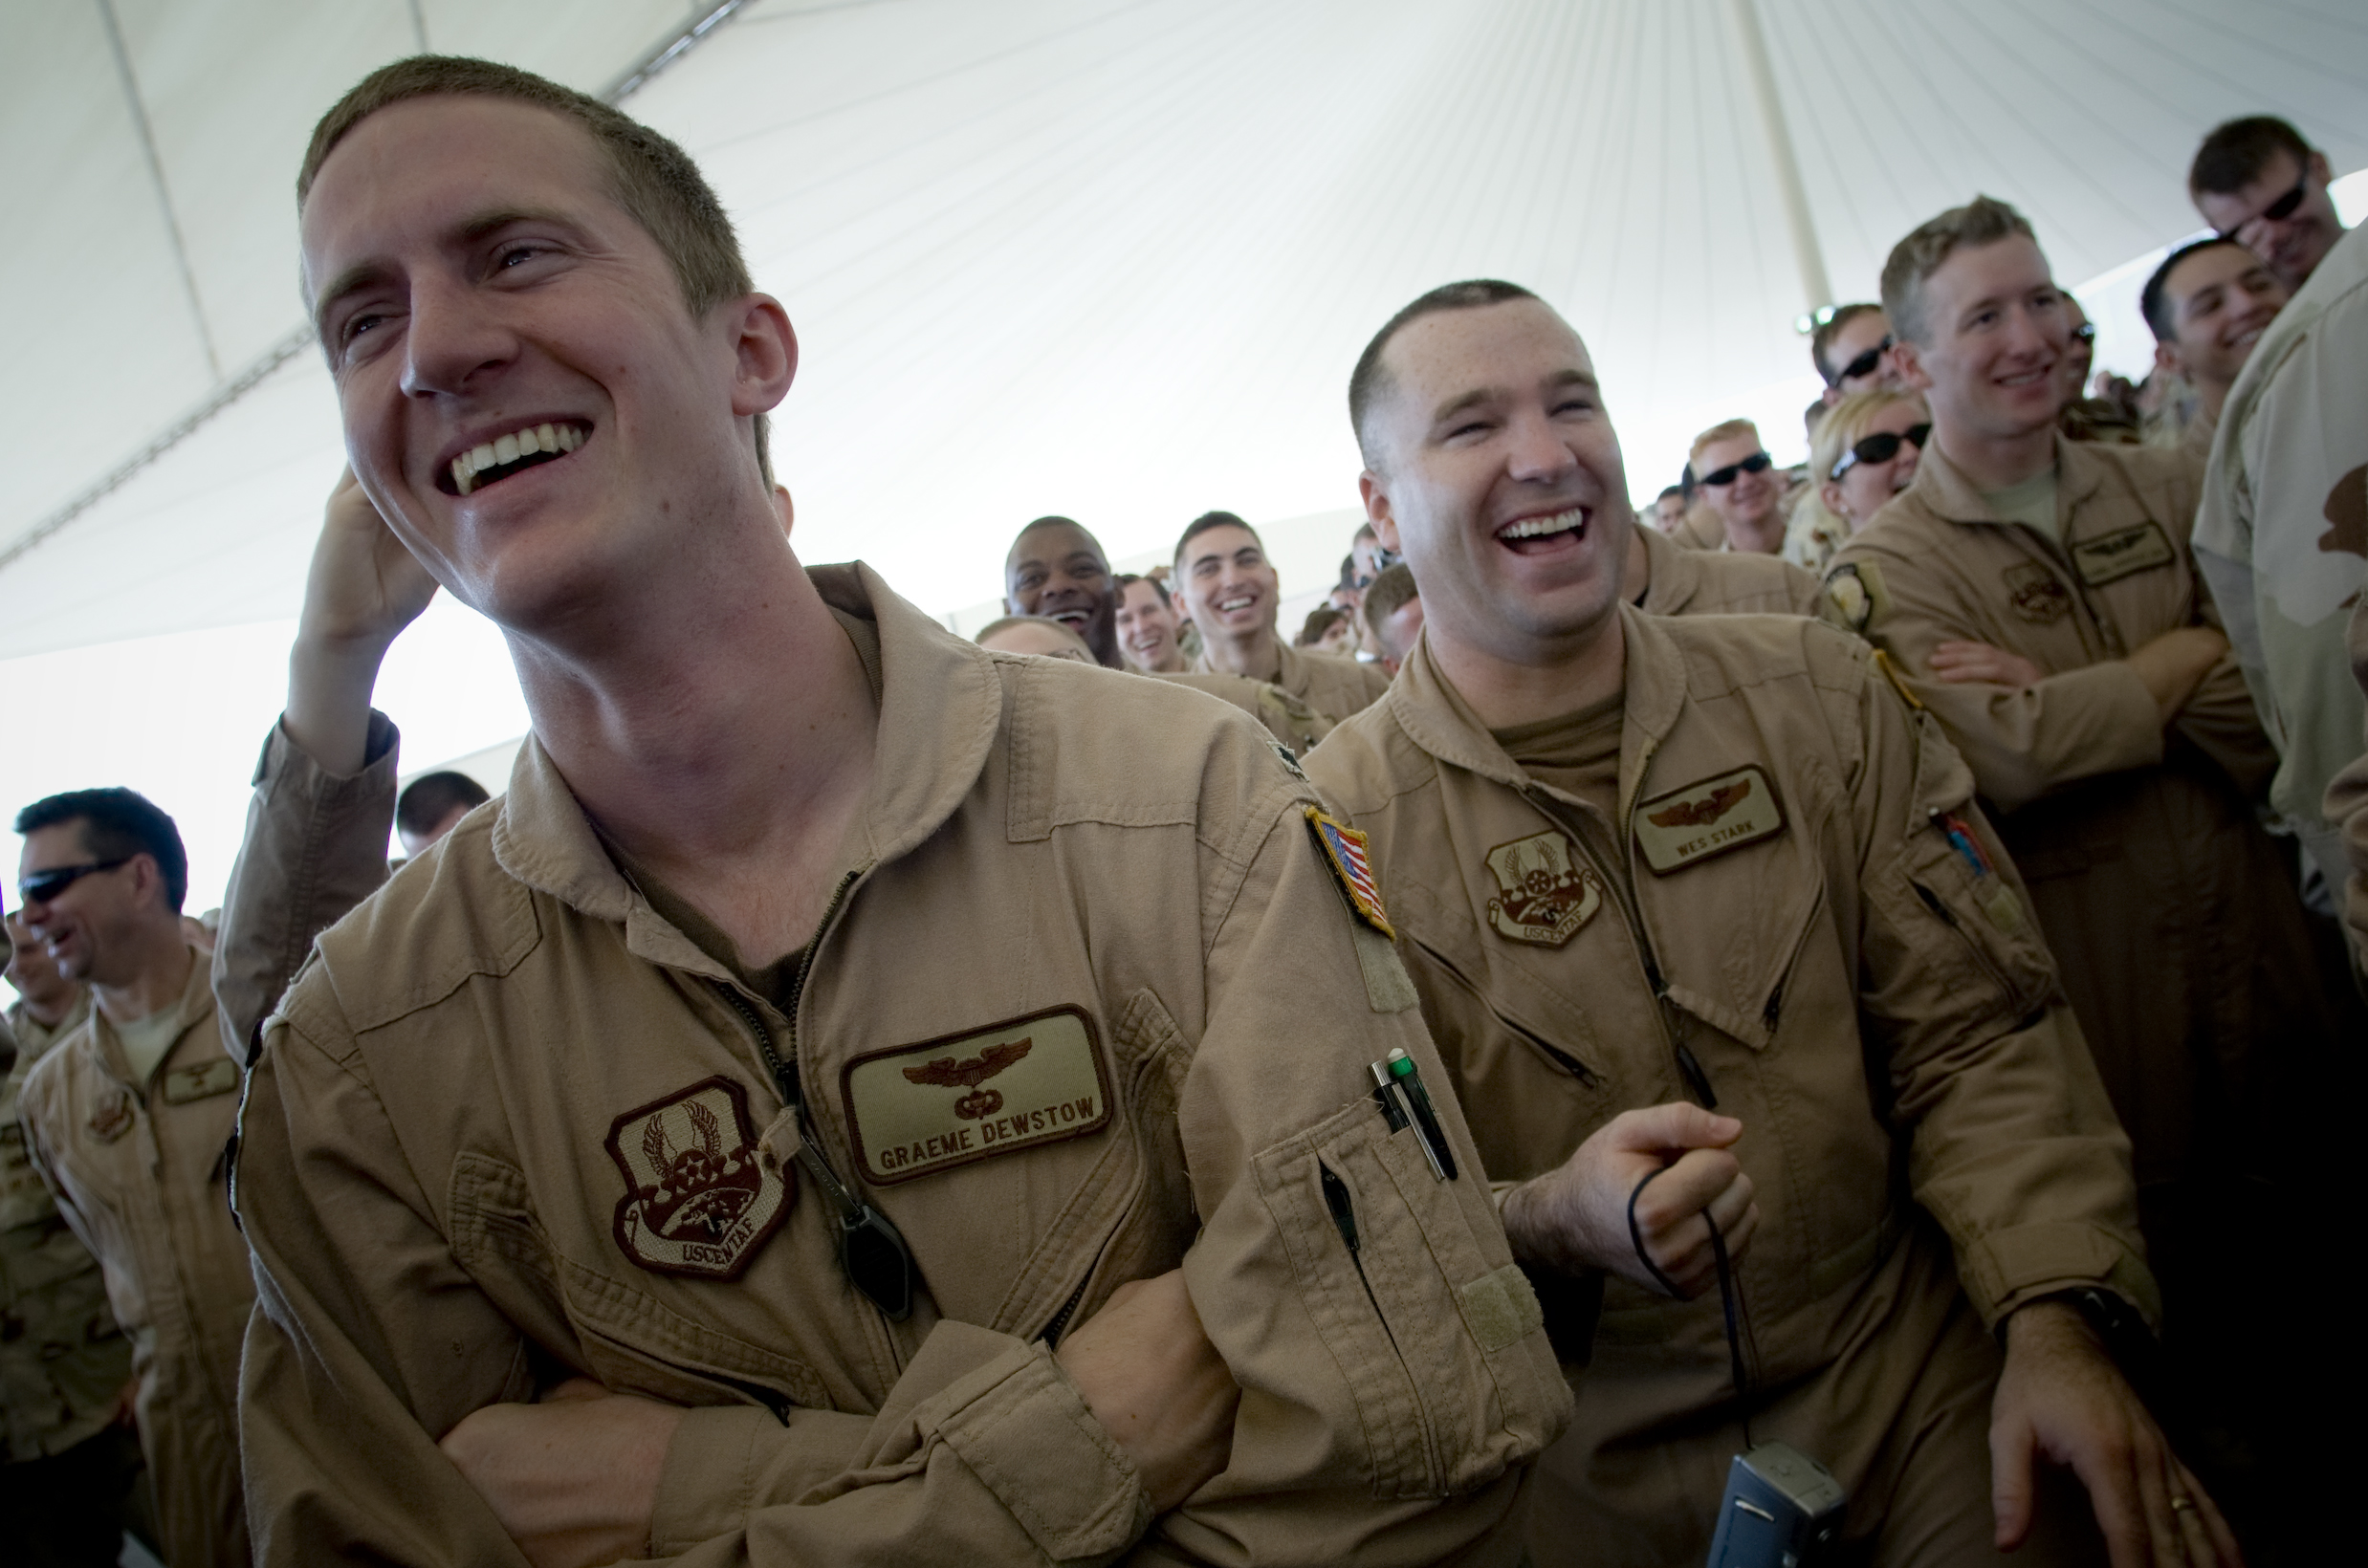 Airman enjoy Robin Williams' shtick during a 2007 show in Kuwait.